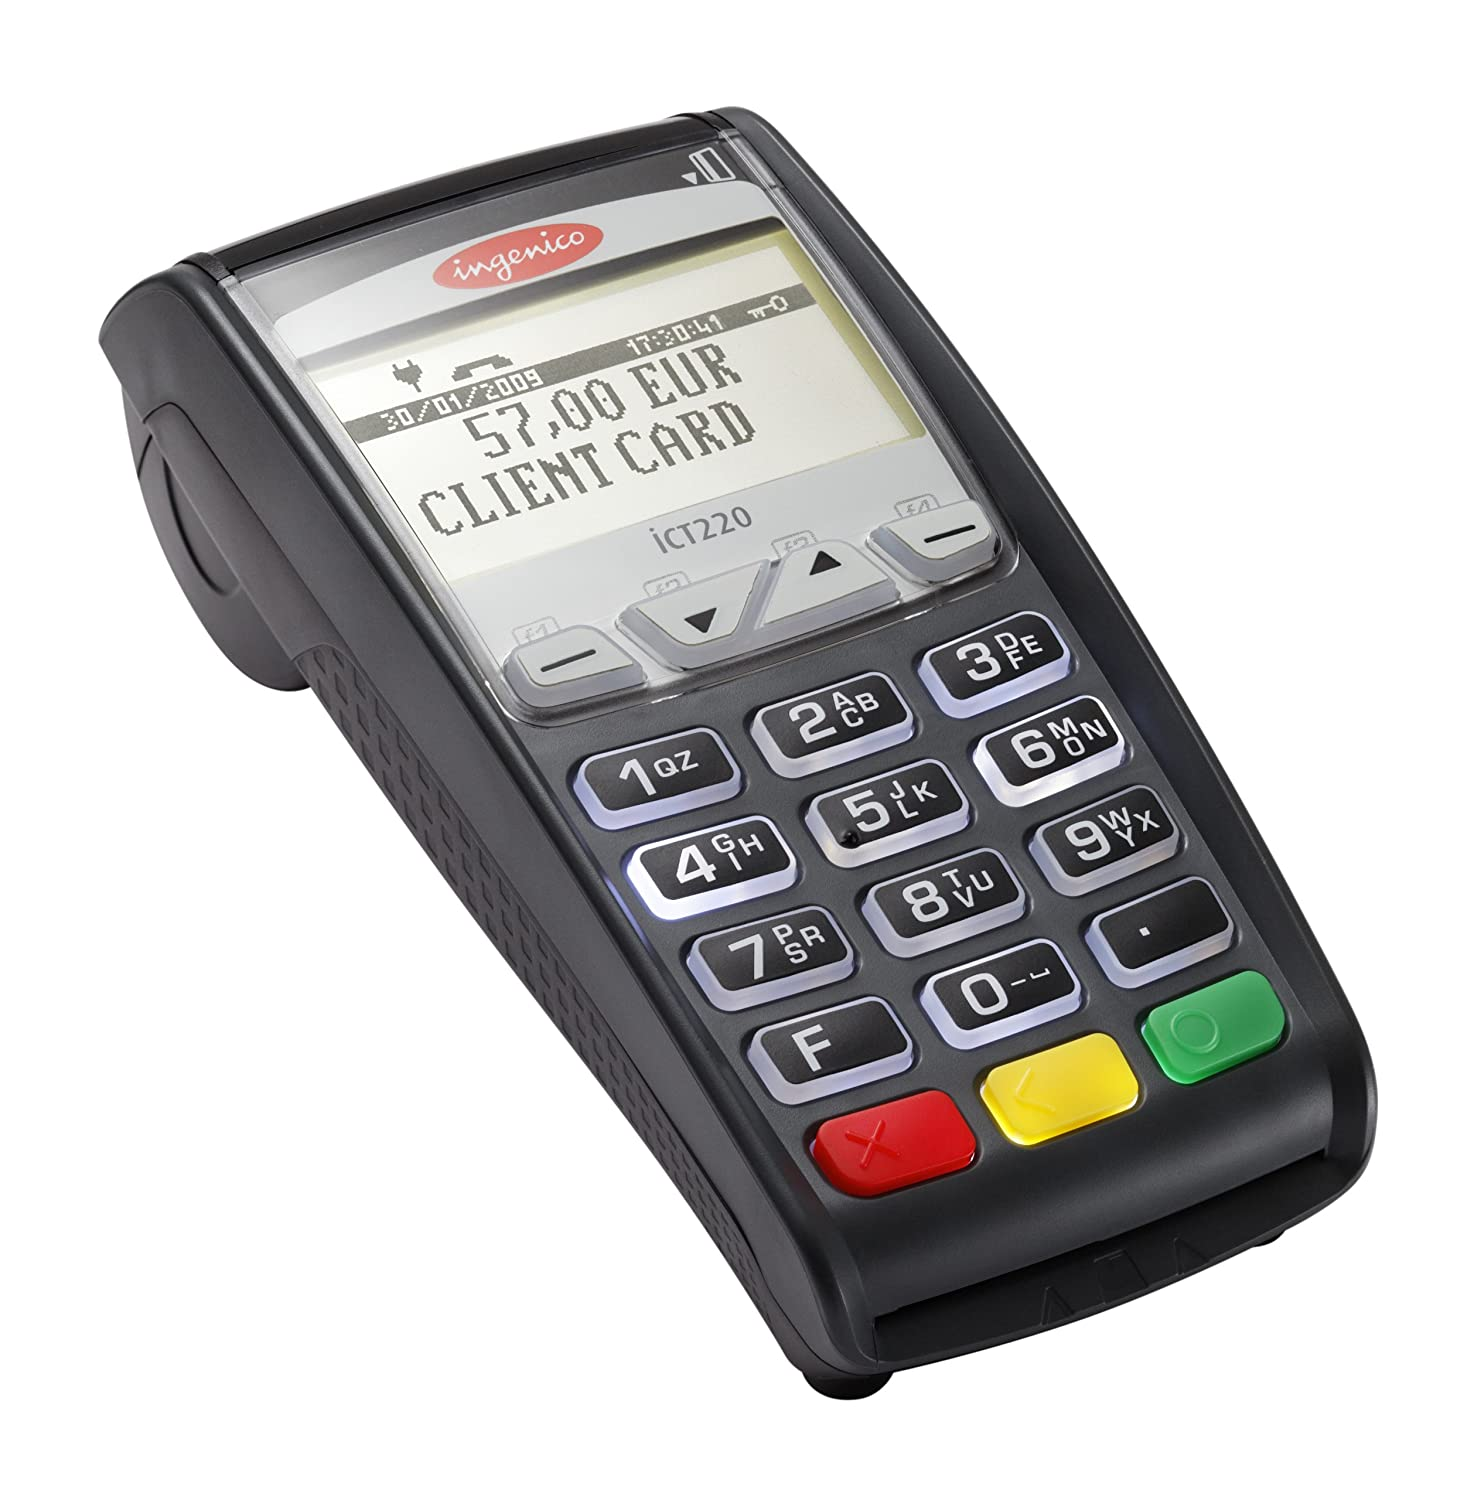 ingenico ict220 dual terminal features smart